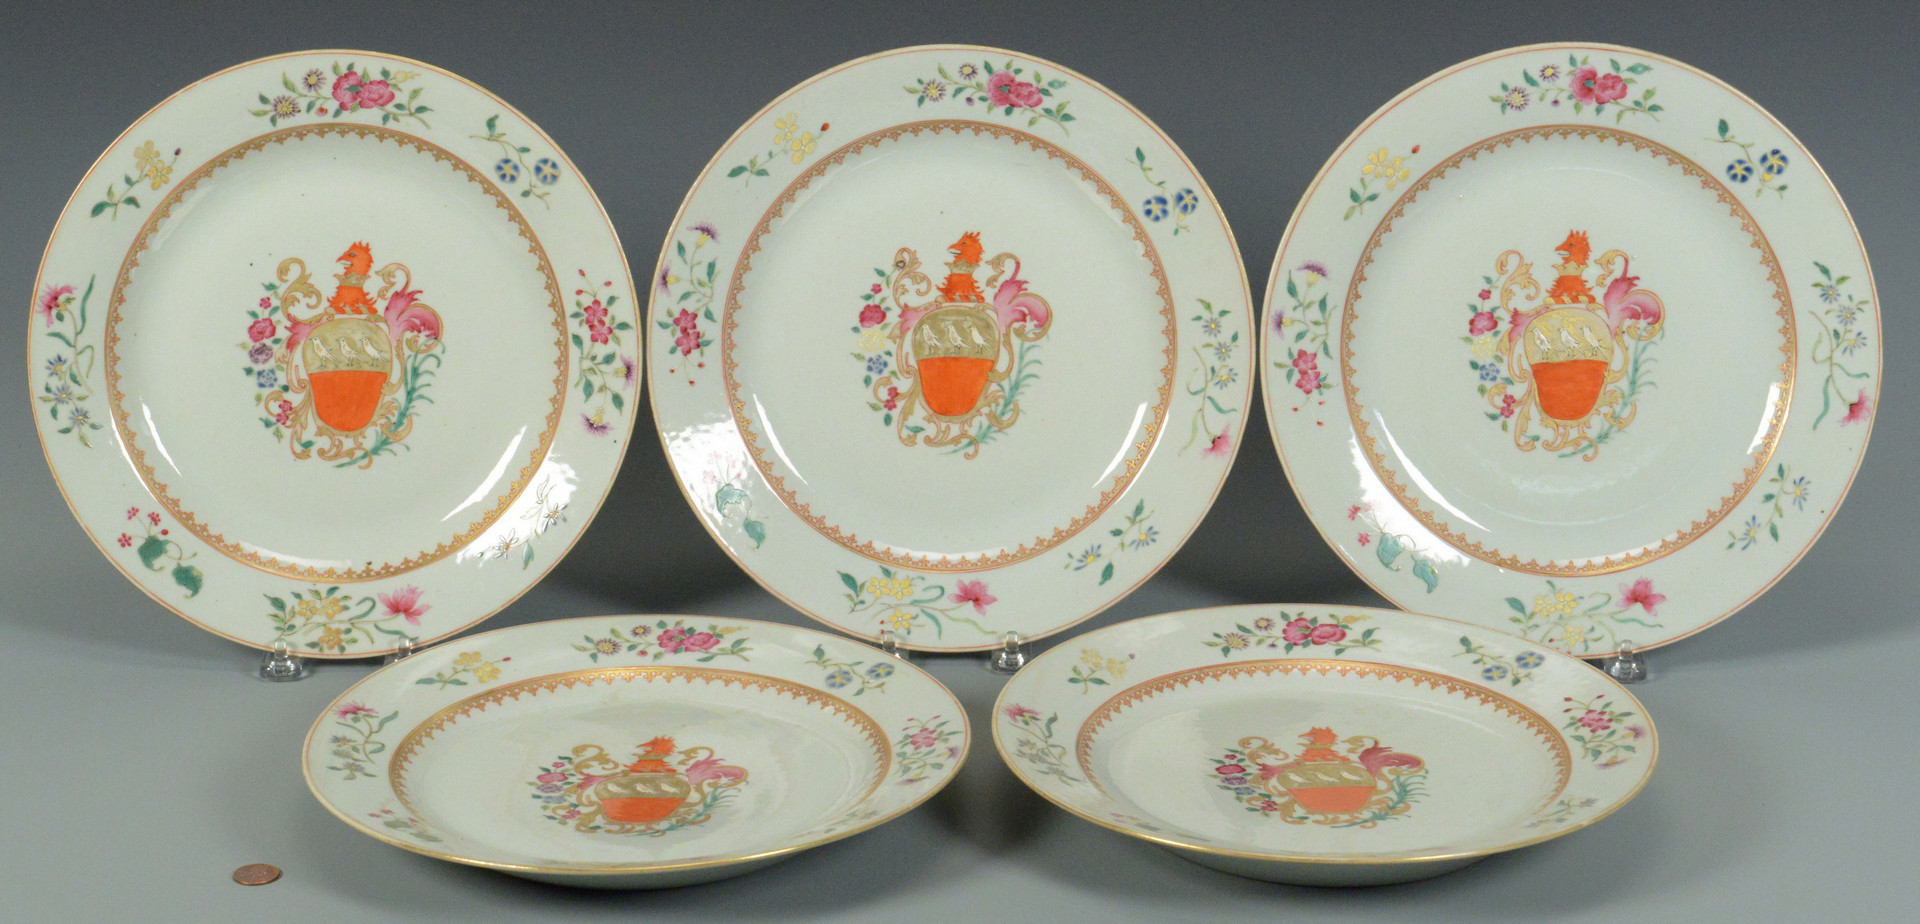 Lot 745: 7 Chinese Export Armorial Porcelain Items